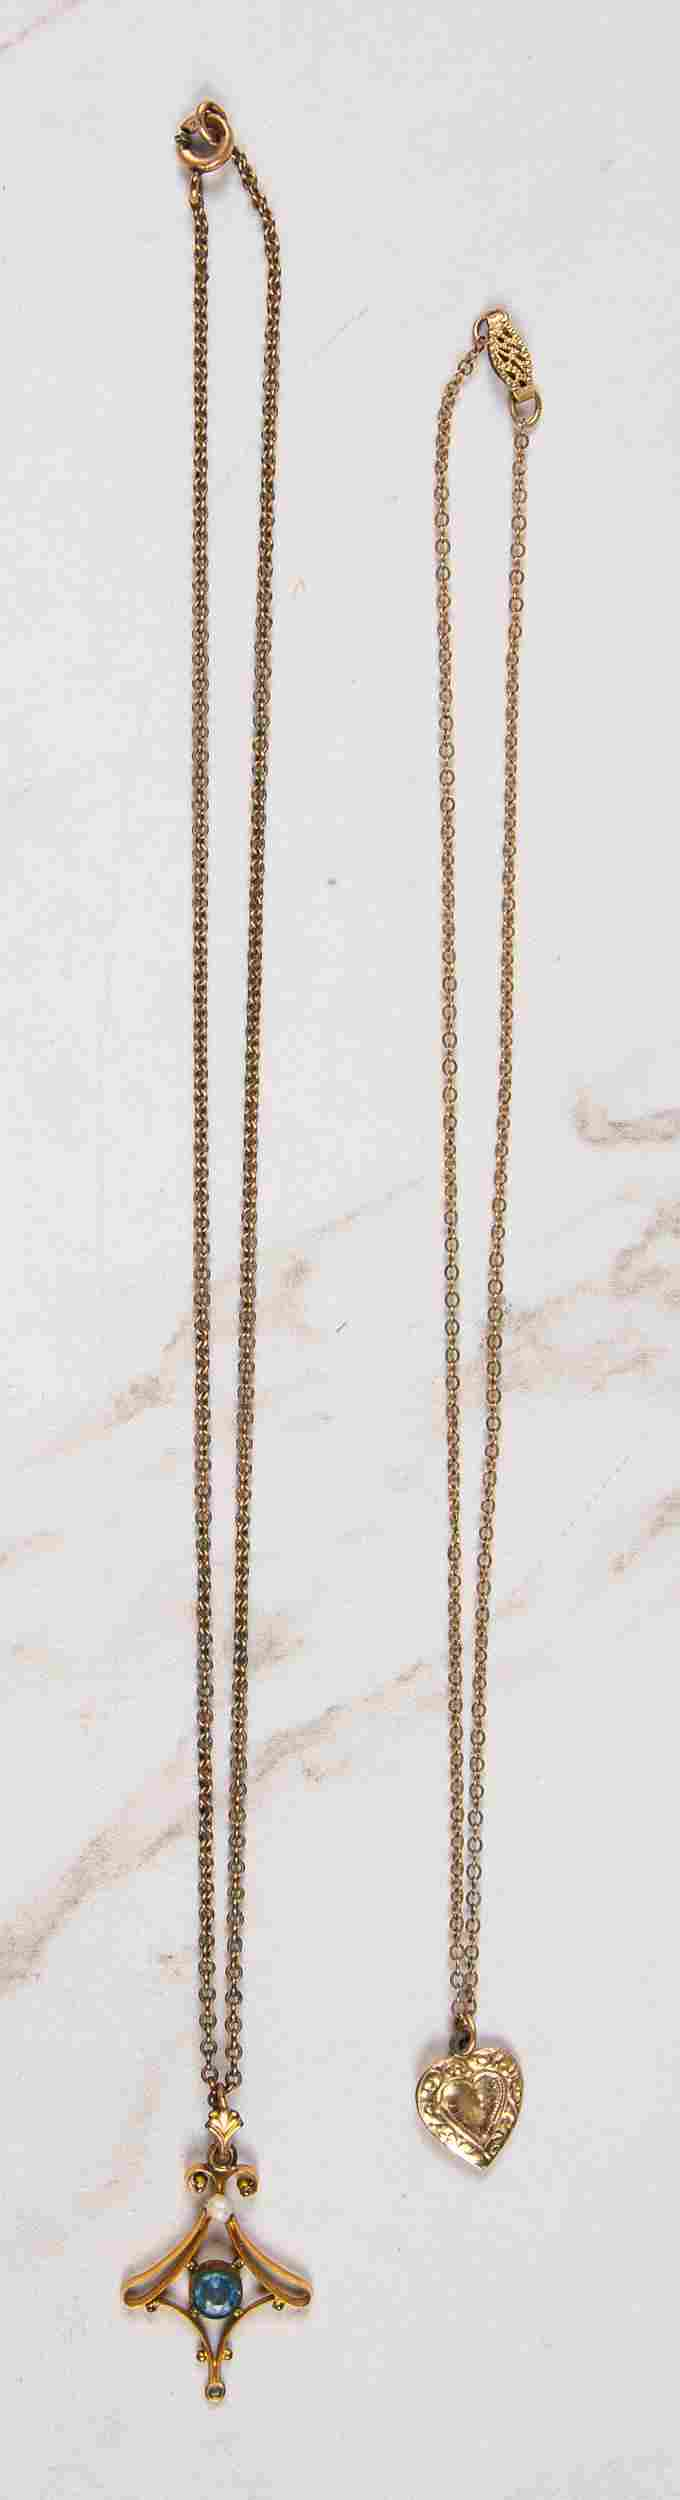 Two 14K gold necklaces